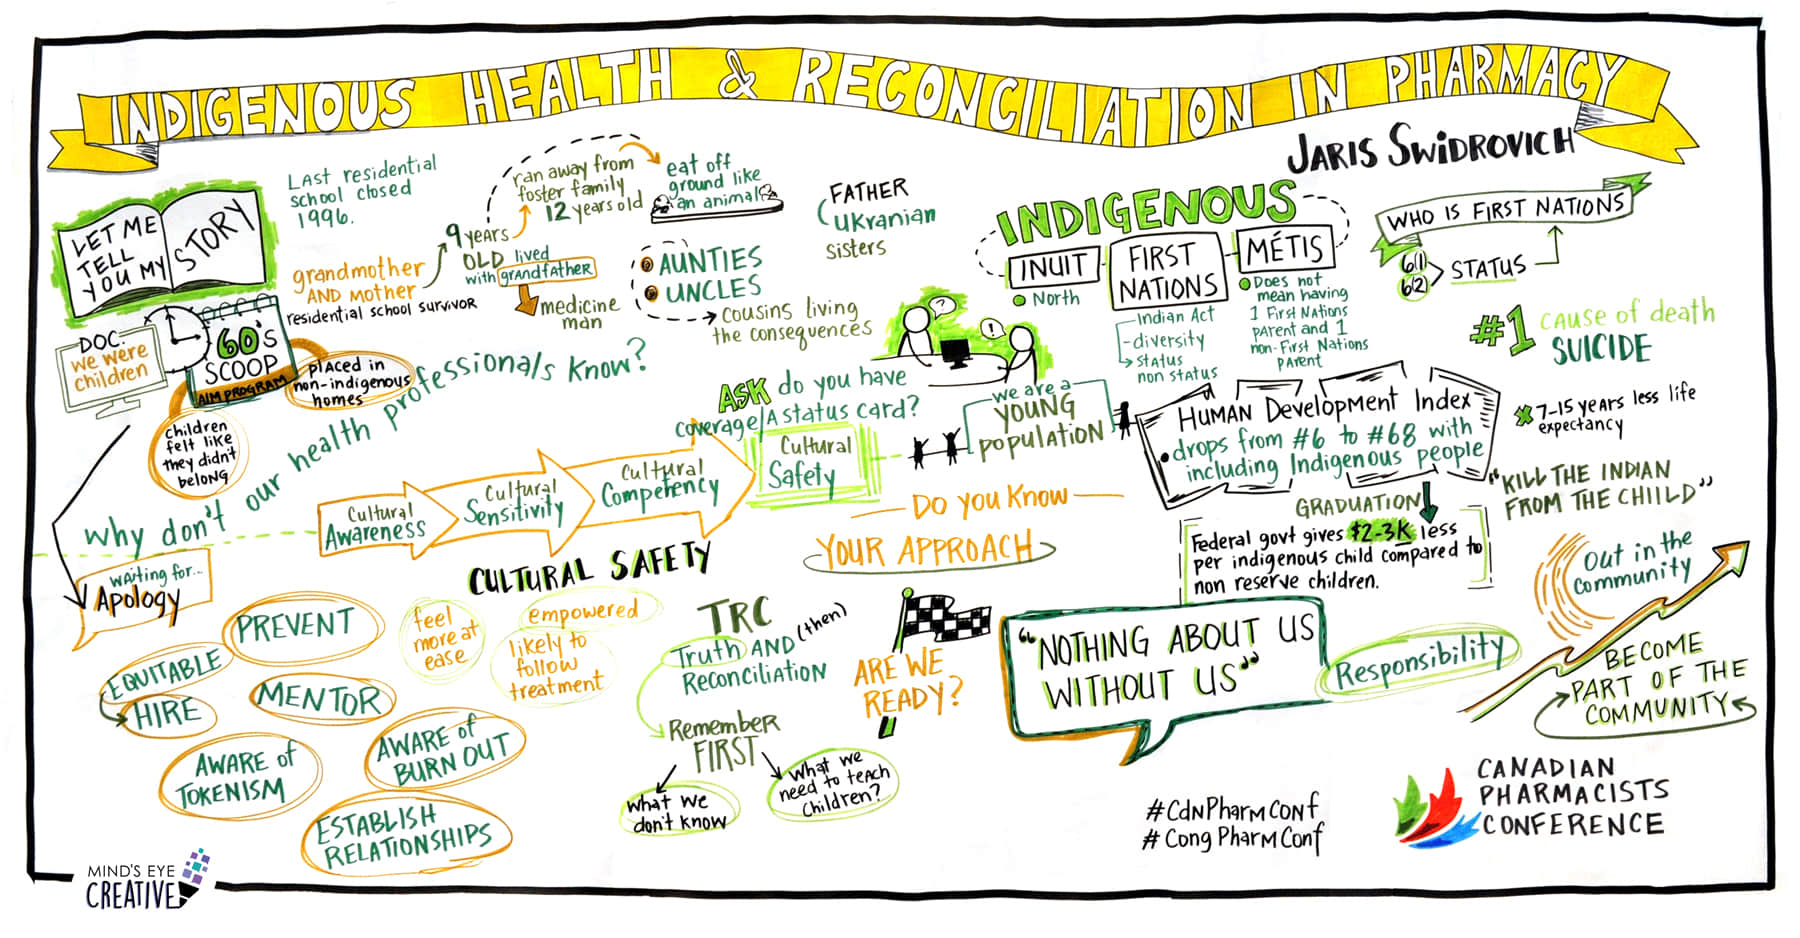 indigenous health and reconciliation in pharmacy